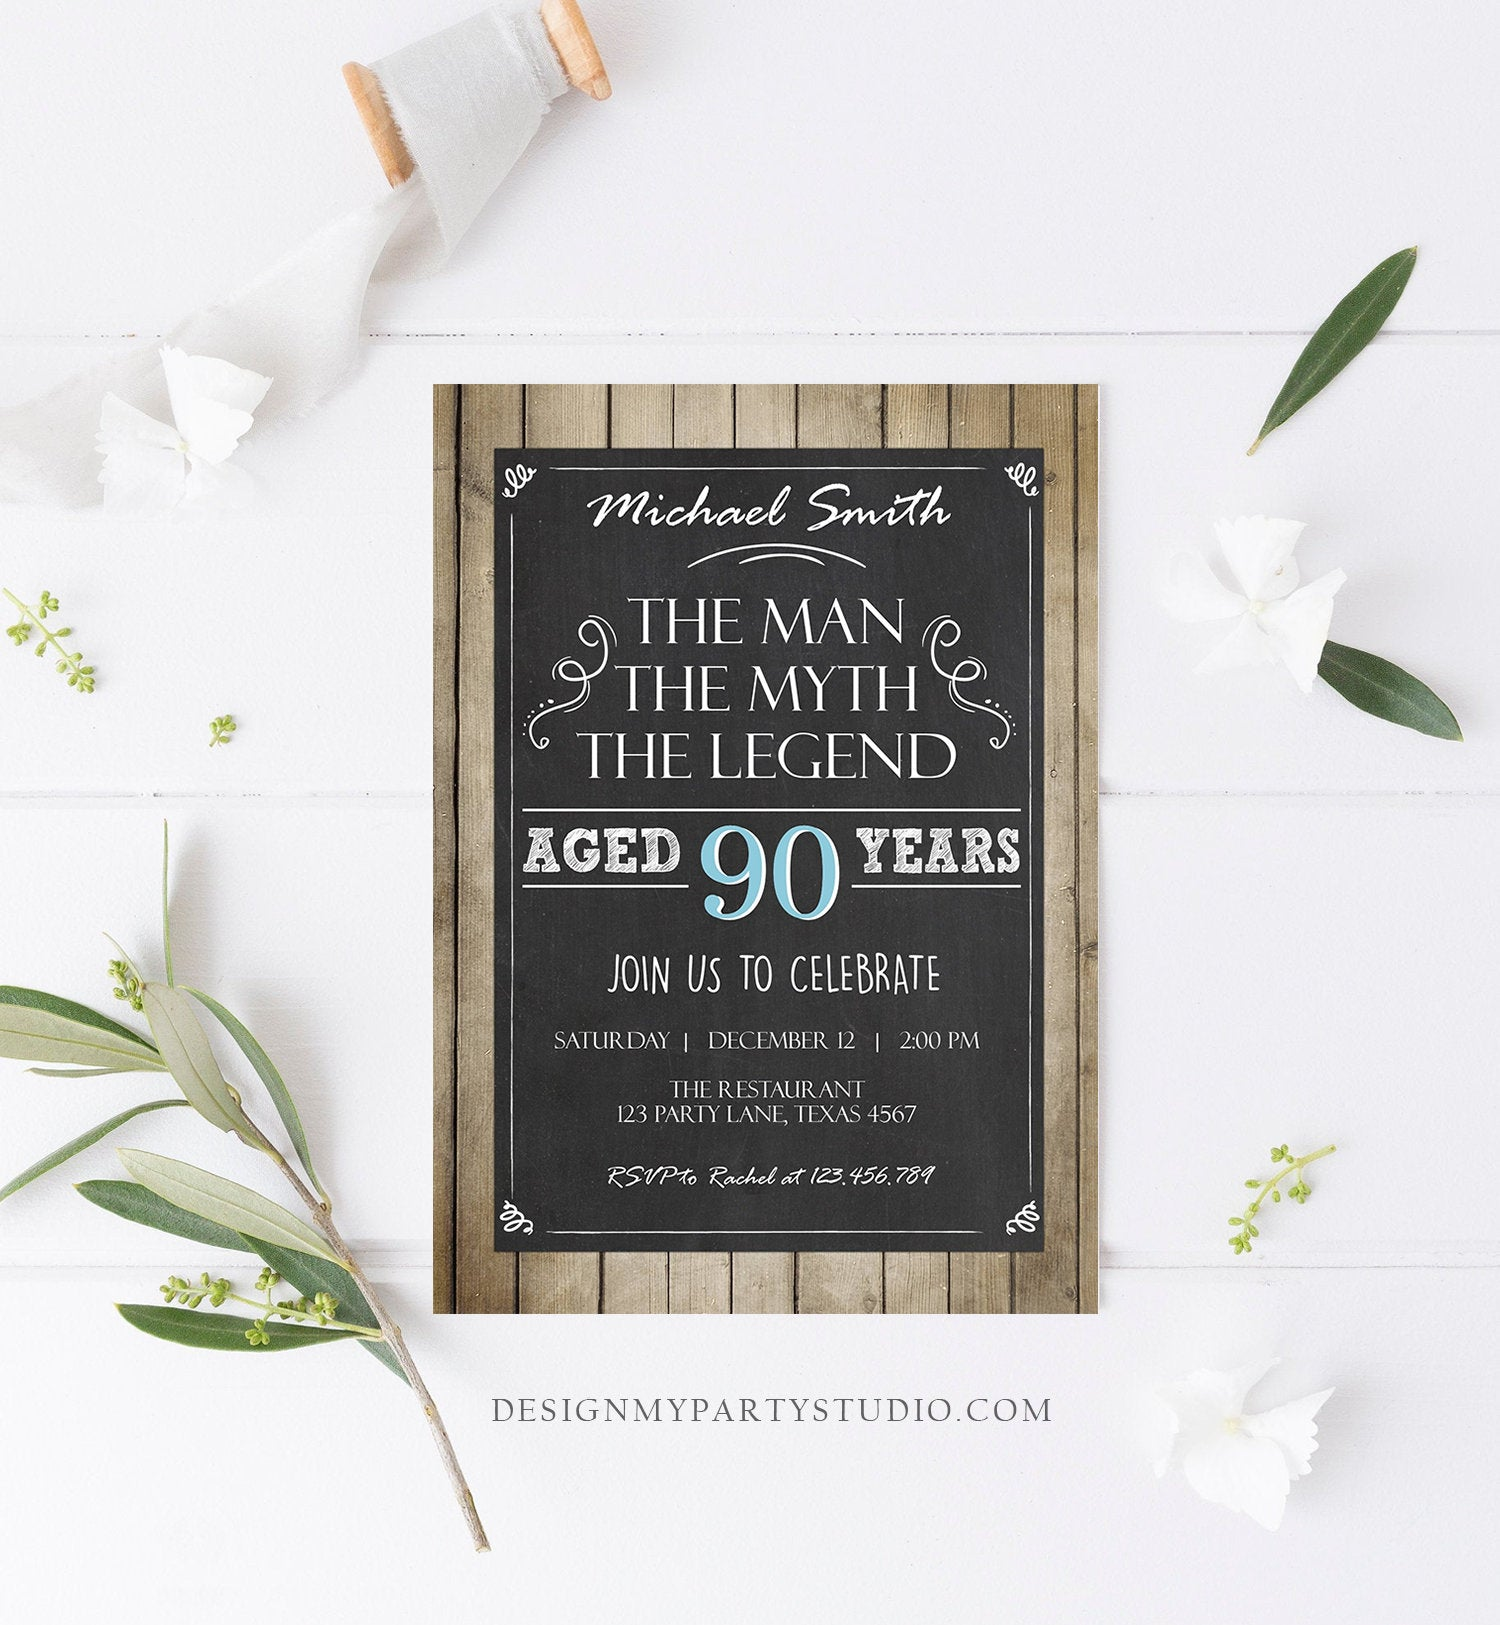 Editable The Man The Myth The Legend Birthday Invitation Man Men Adult Birthday Wood Rustic Chalk Download Printable Invite Corjl 0101